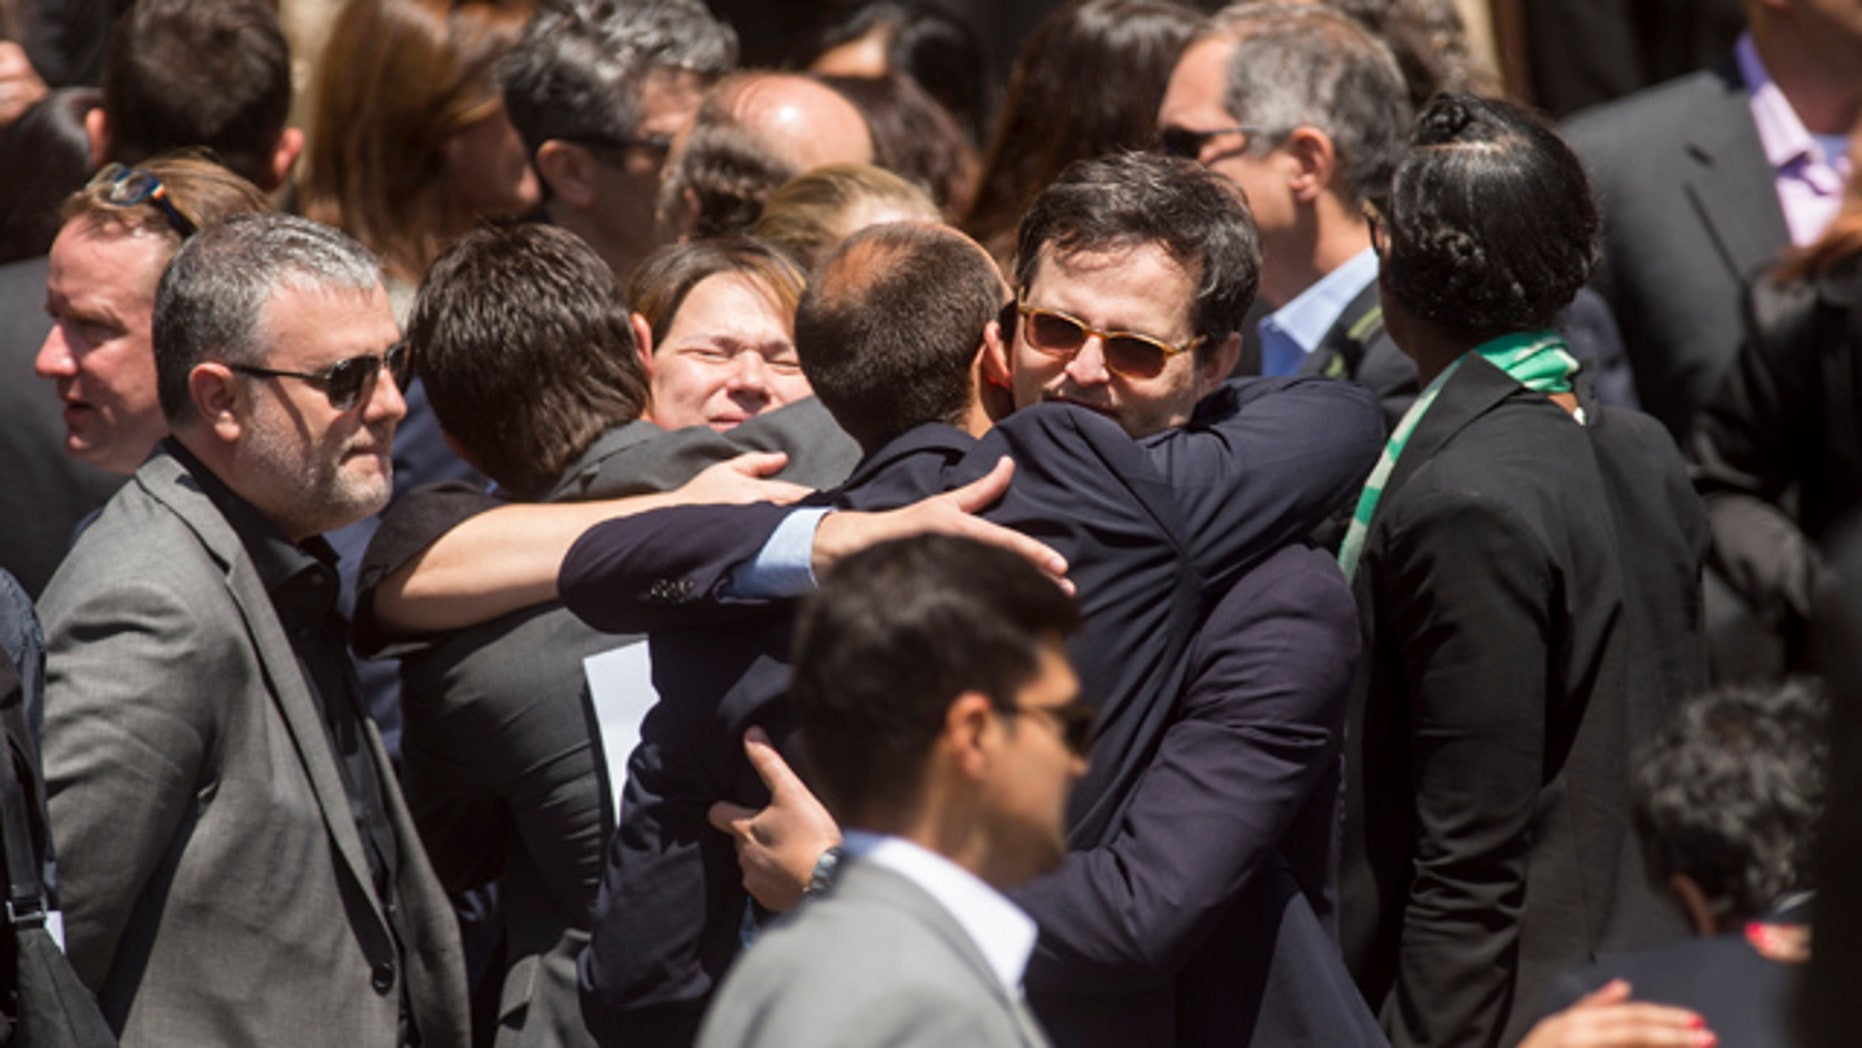 May 5, 2015: Mourners leave a memorial service for SurveyMonkey CEO David Goldberg on Tuesday, May 5, 2015, in Stanford, Calif. Goldberg, the 47-year-old husband of 'Lean In' author and Facebook executive Sheryl Sandberg, died in an accident while exercising at a Mexican vacation resort on Friday, May 1. Authorities say he apparently slipped on a treadmill and struck his head. (AP Photo/Noah Berger)